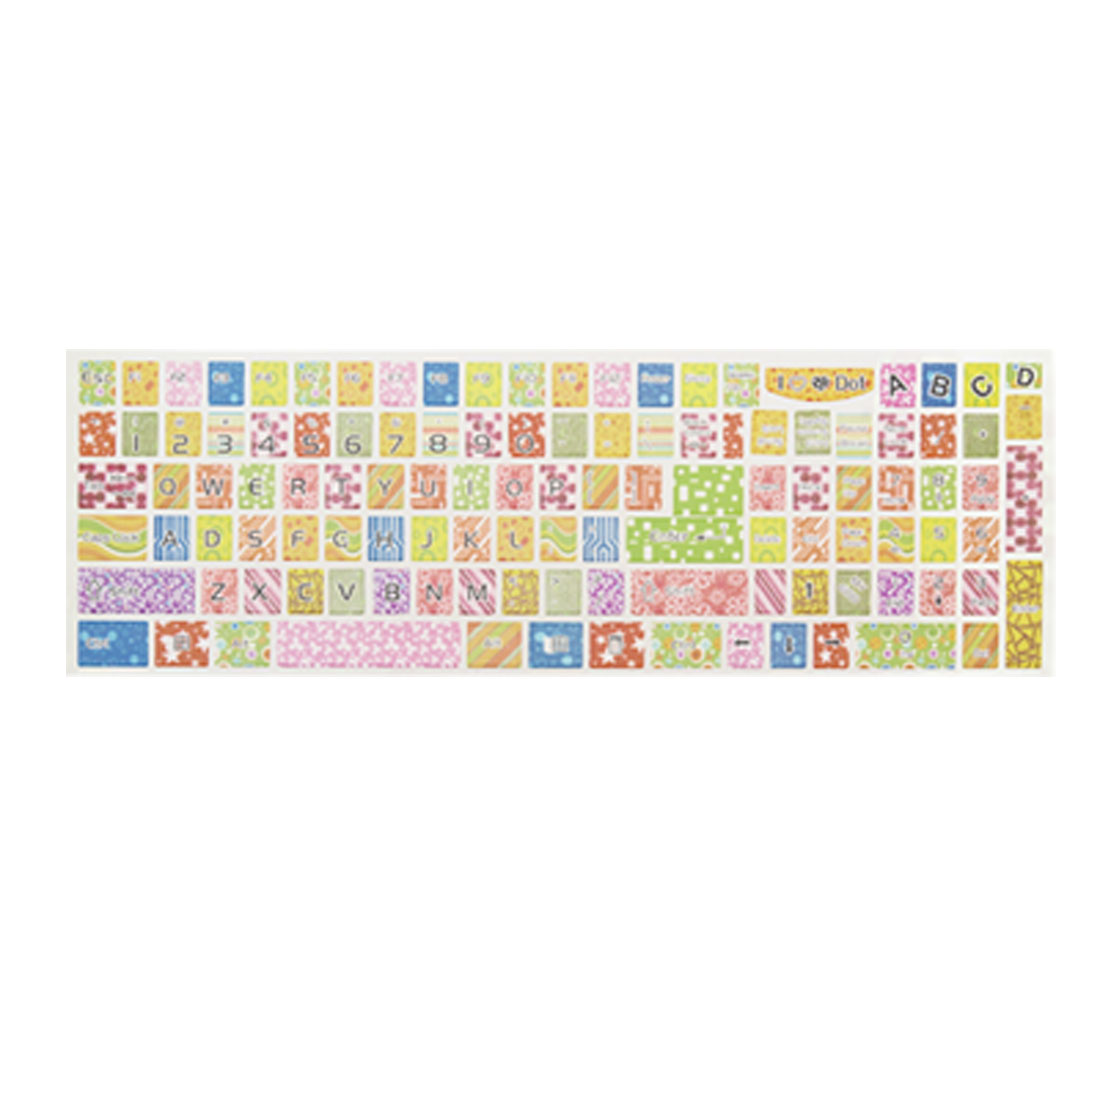 Colorful Printed Removable Plastic Keyboard Sticker Decal